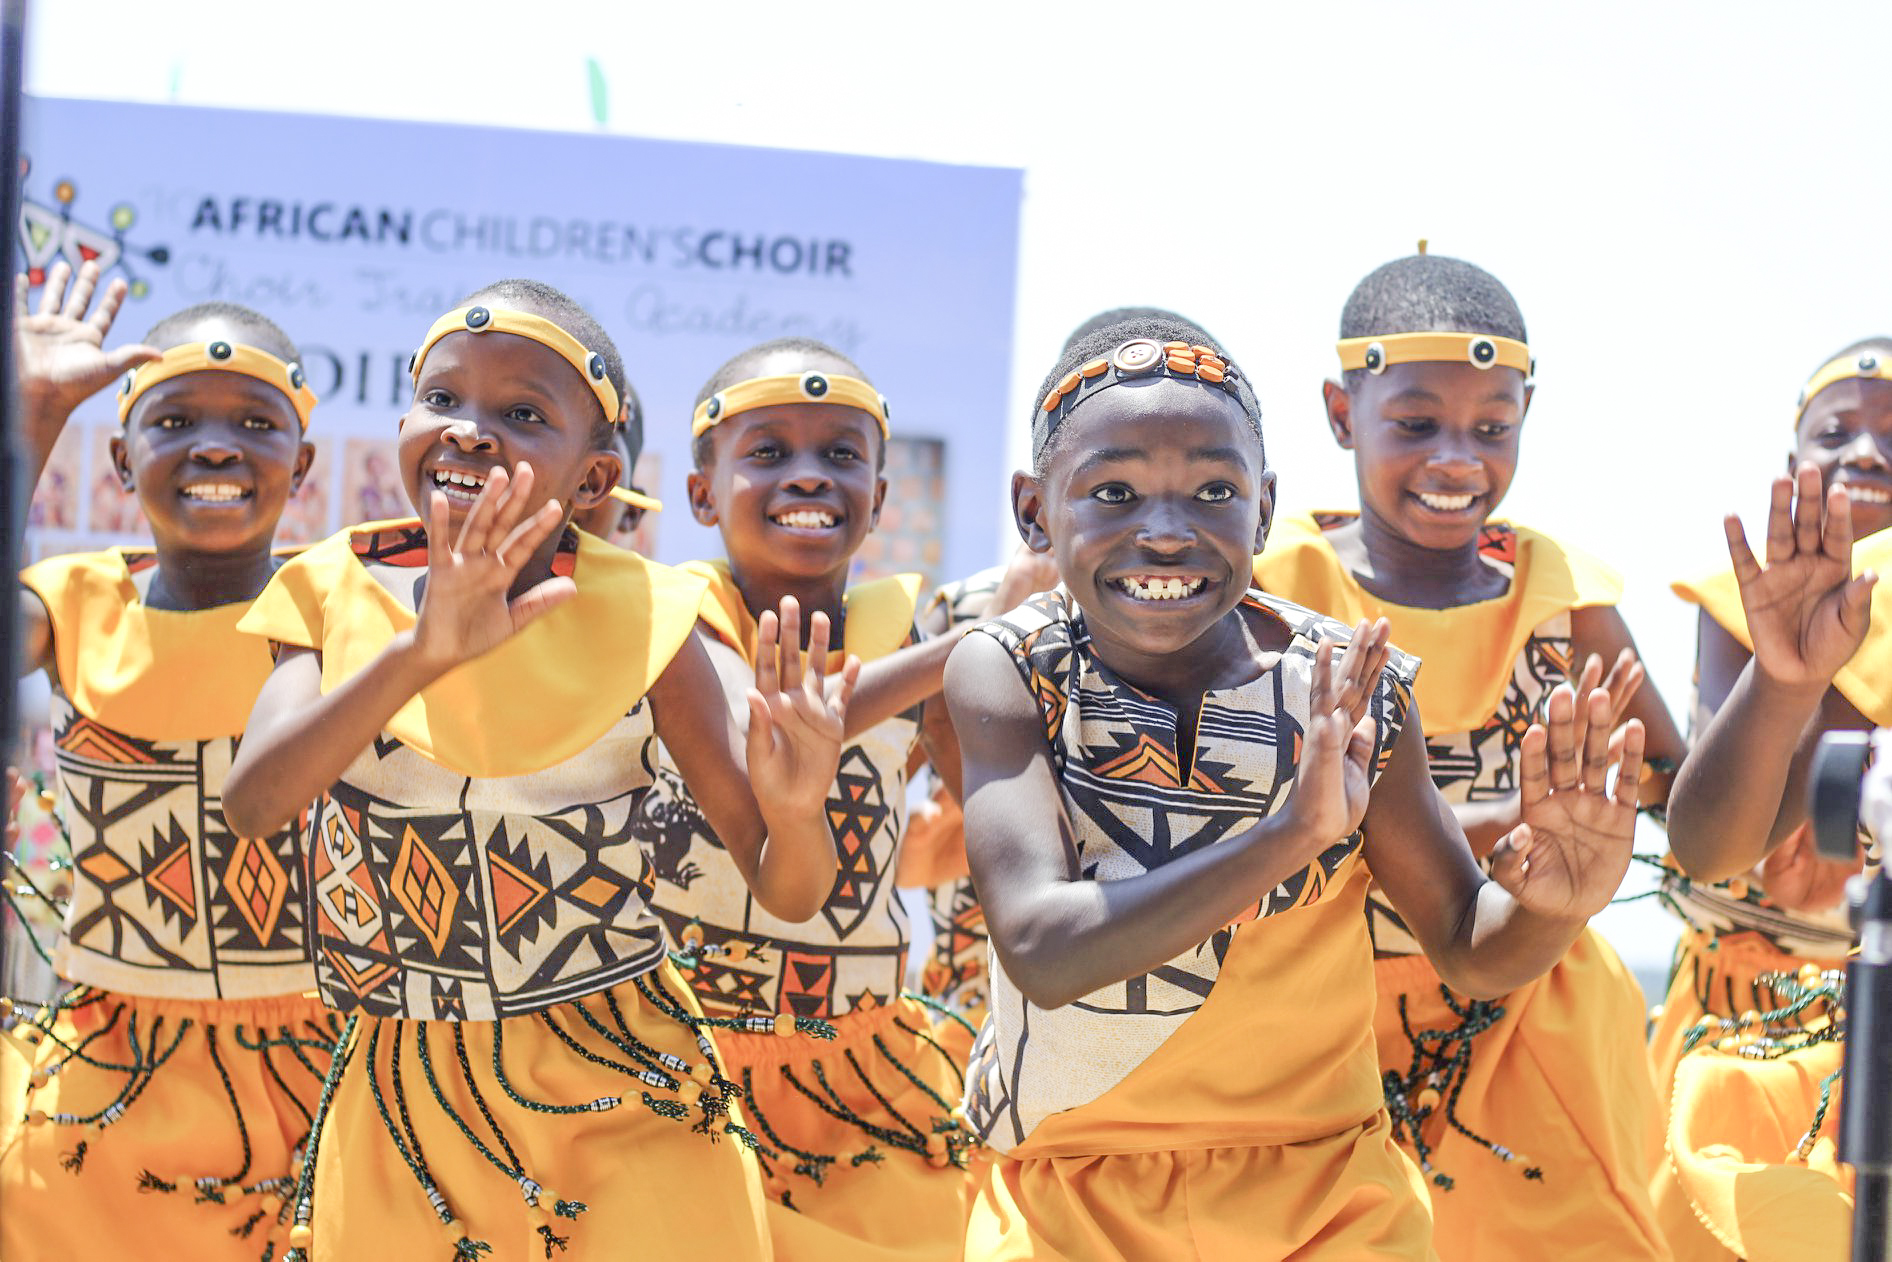 The African Children's Choir to perform in Oceanside